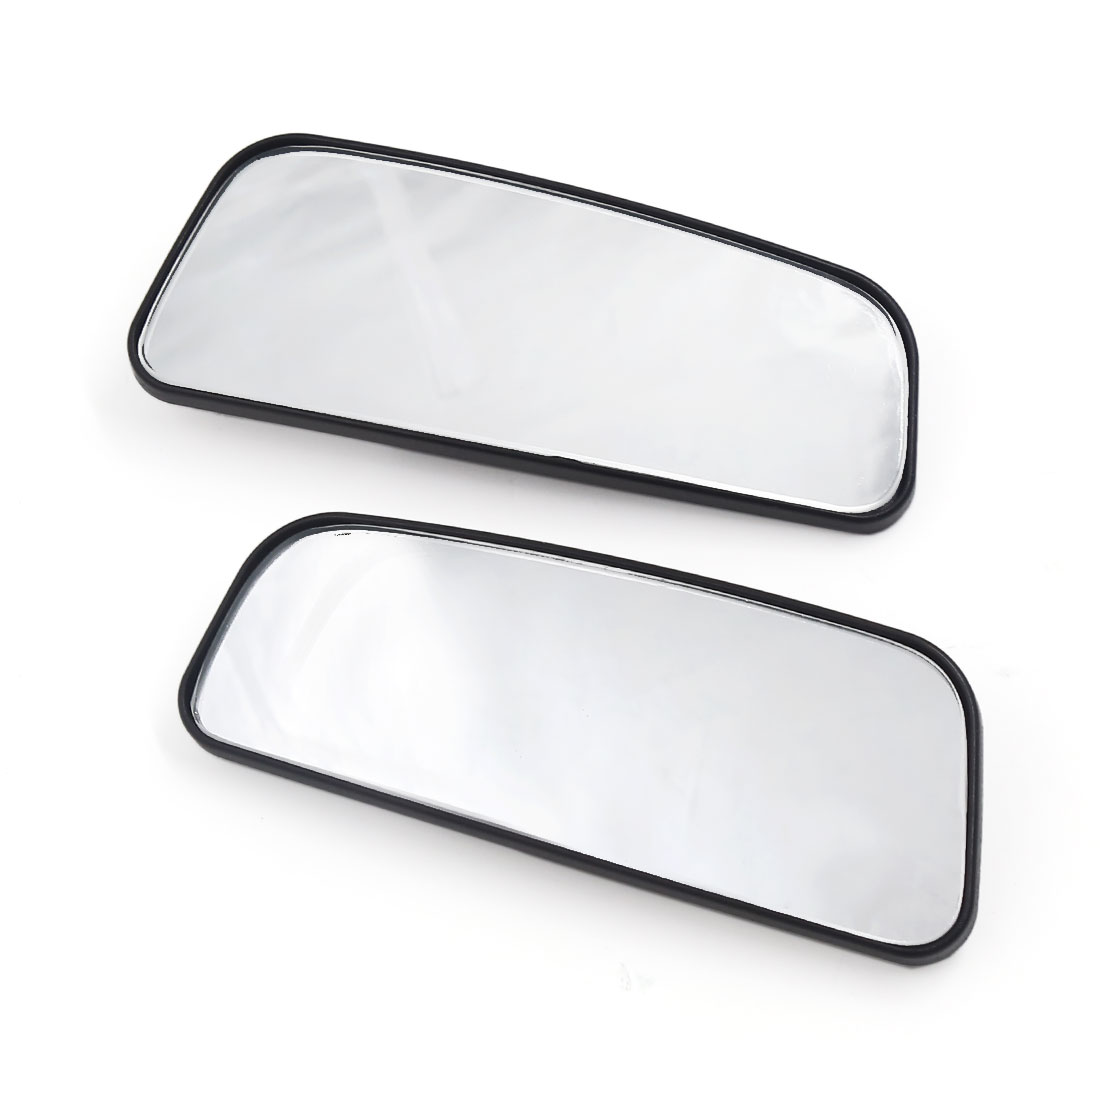 Self-adhesive Adjustable Rectangle Shaped Car Blind Spot Rearview Mirror 2pcs